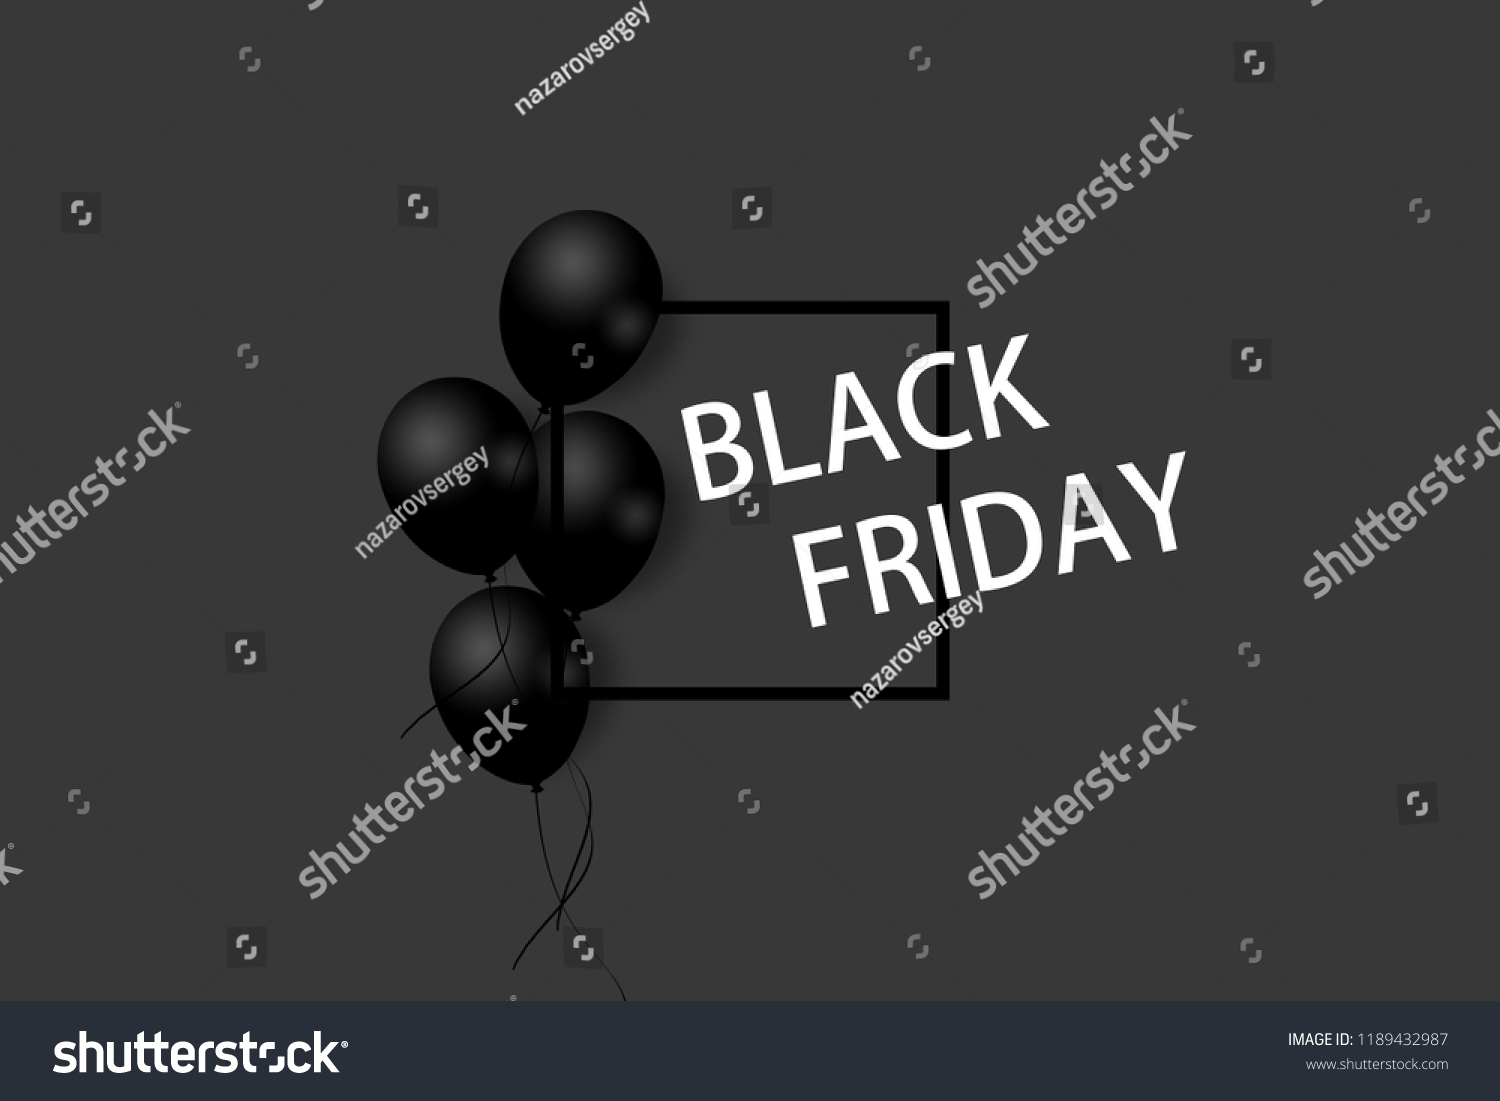 Royalty Free Stock Illustration Of Black Friday Sale Poster Black